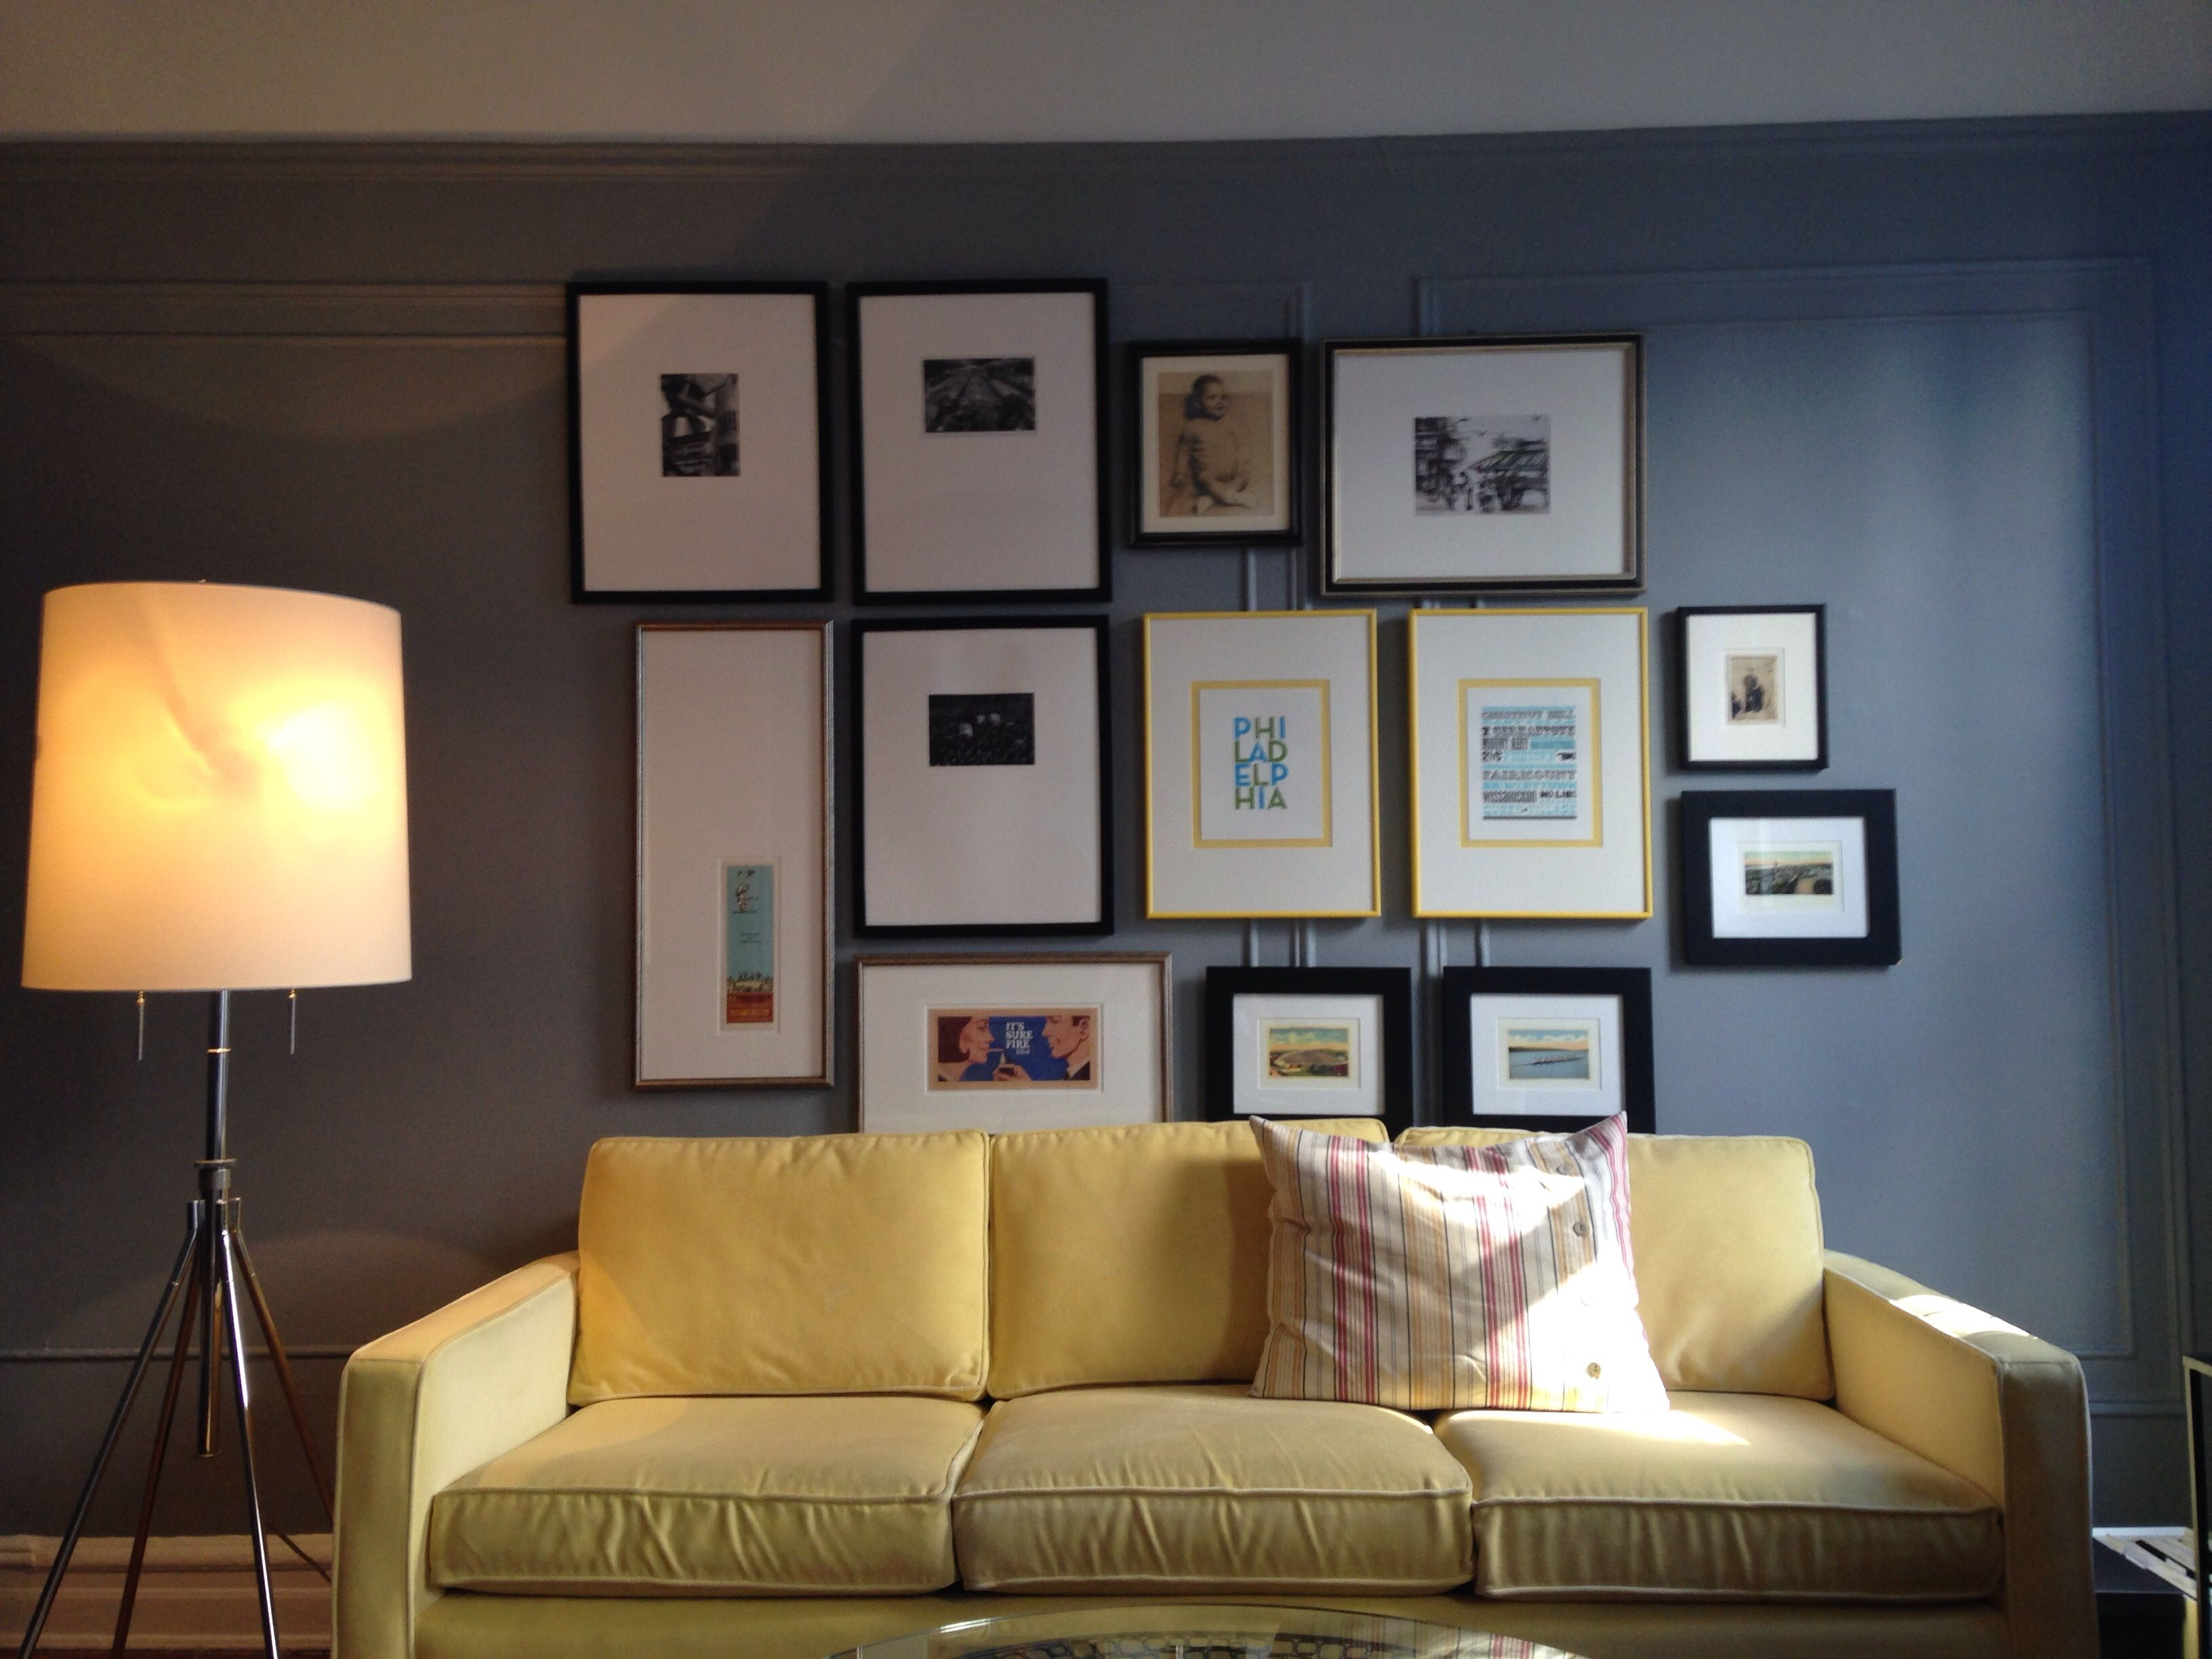 Brooklyn Living Room: Picture Wall, Yellow Couch